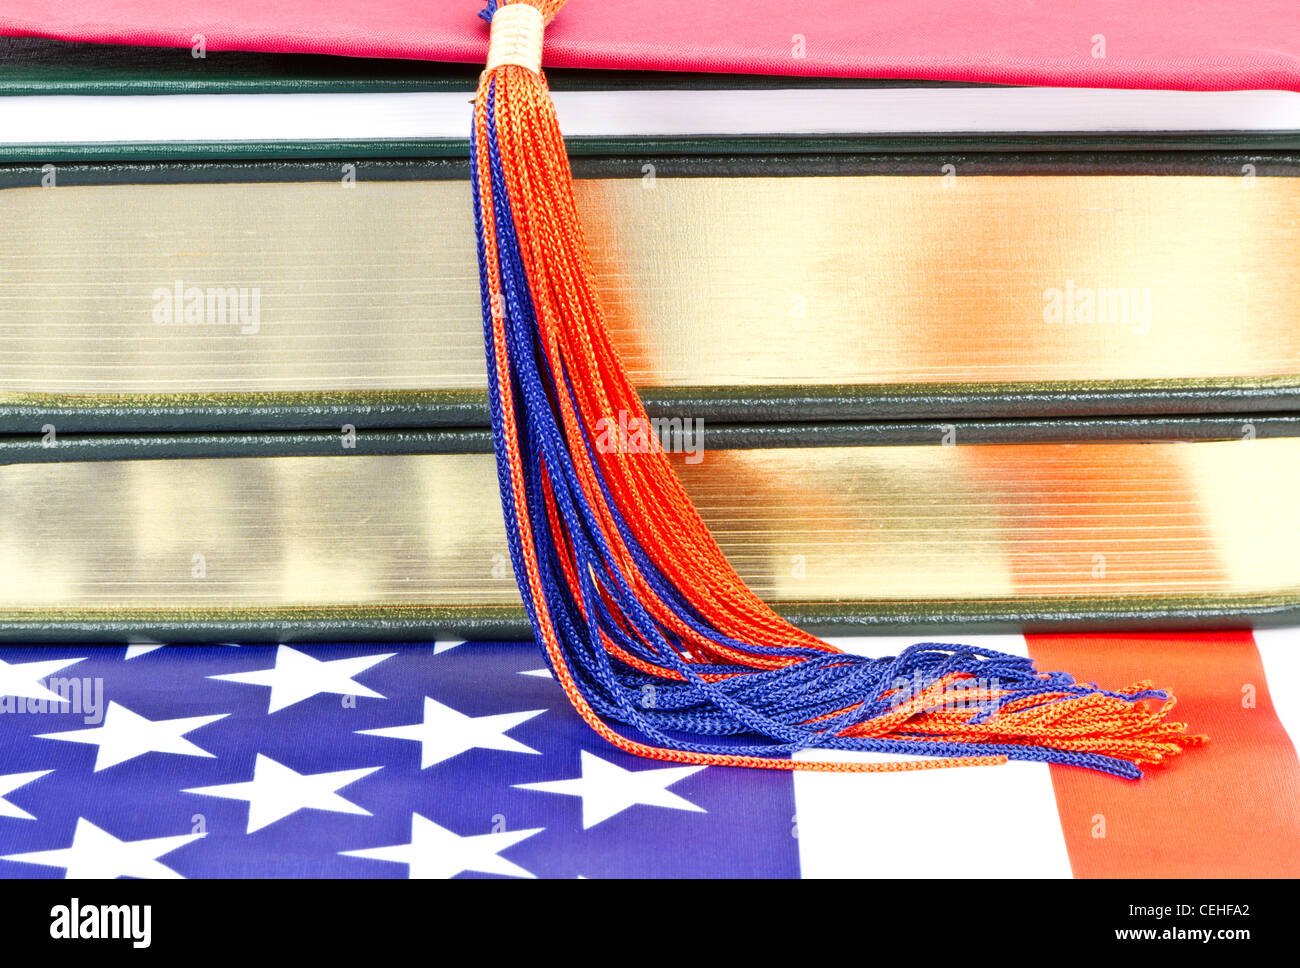 Graduation tassel on top of books placed on American flag symbolize American education, graduation, and its life - Stock Image